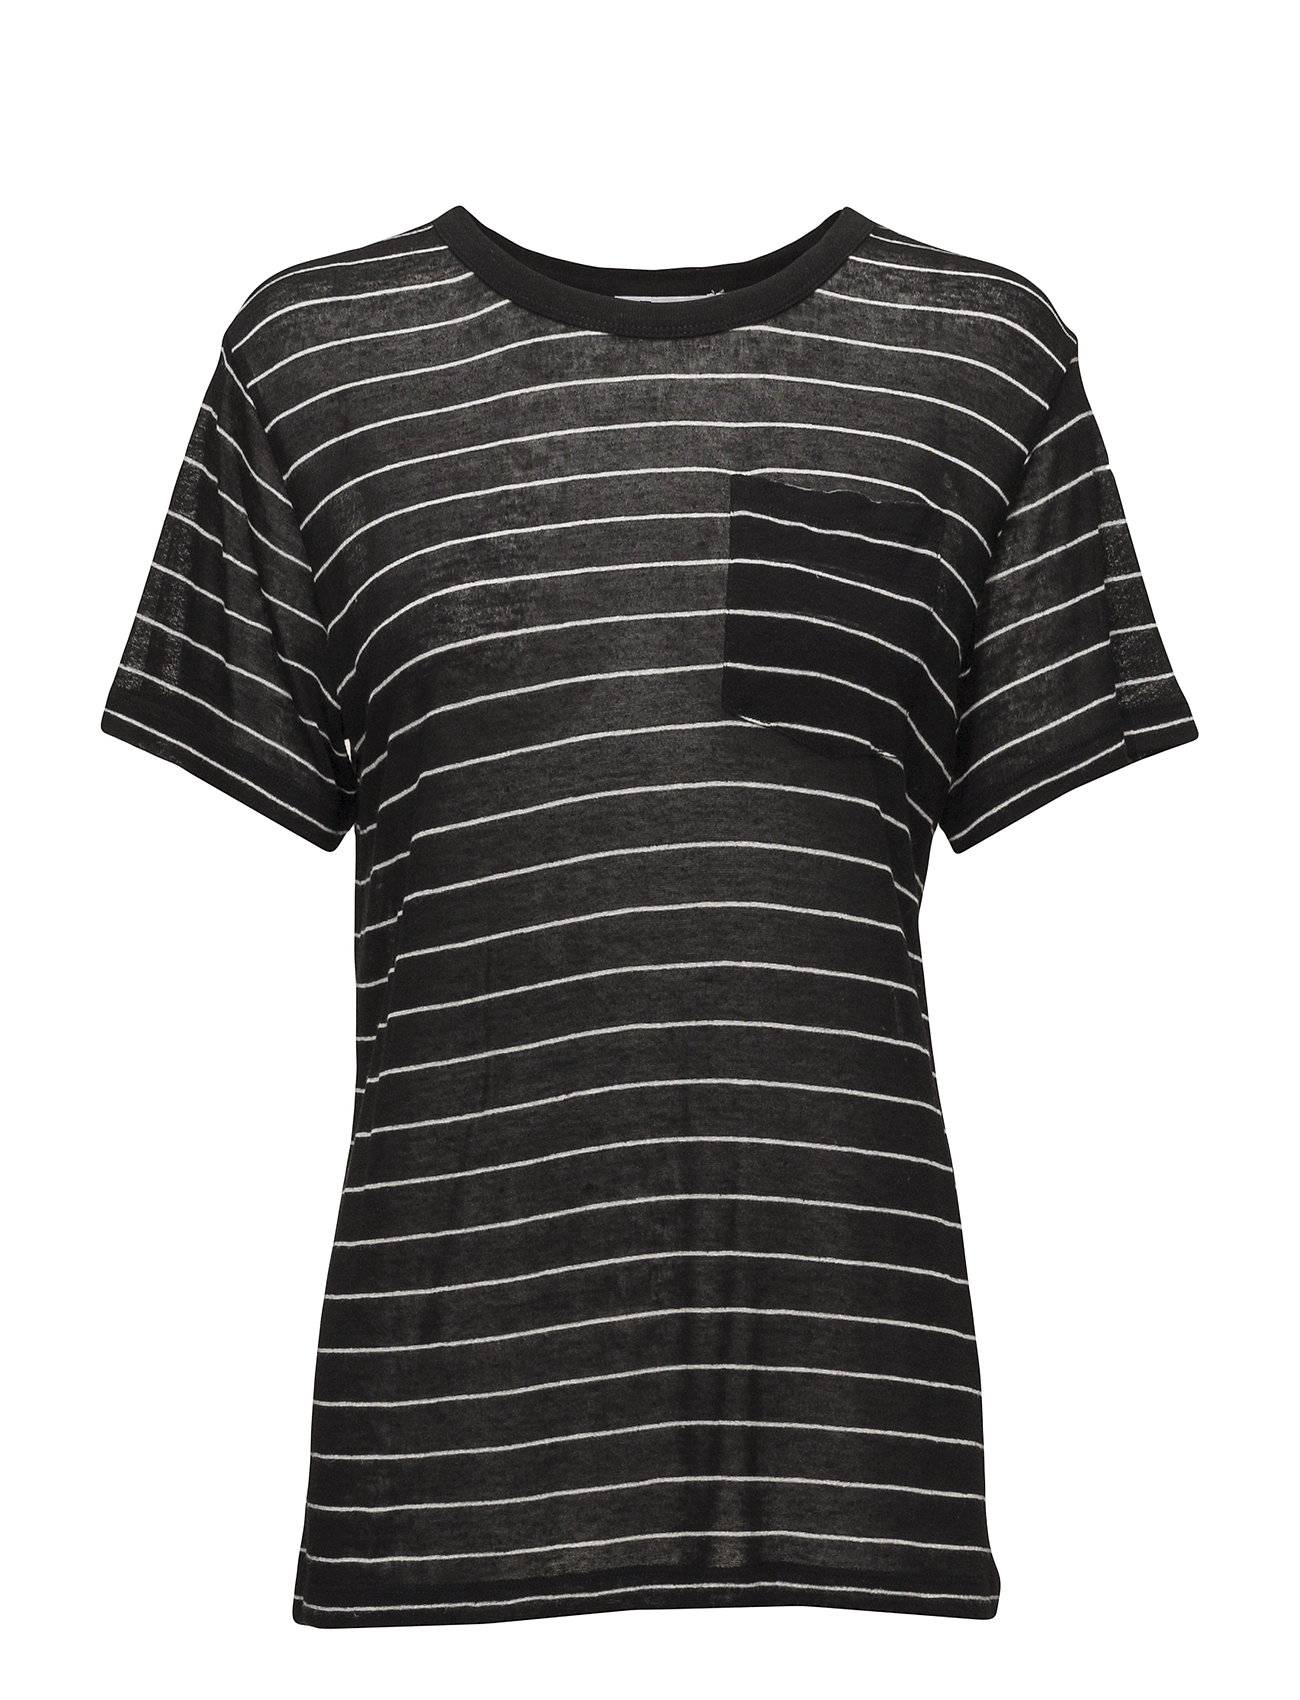 T by Alexander Wang Striped Slub Jersey S/S Tee With Pocket